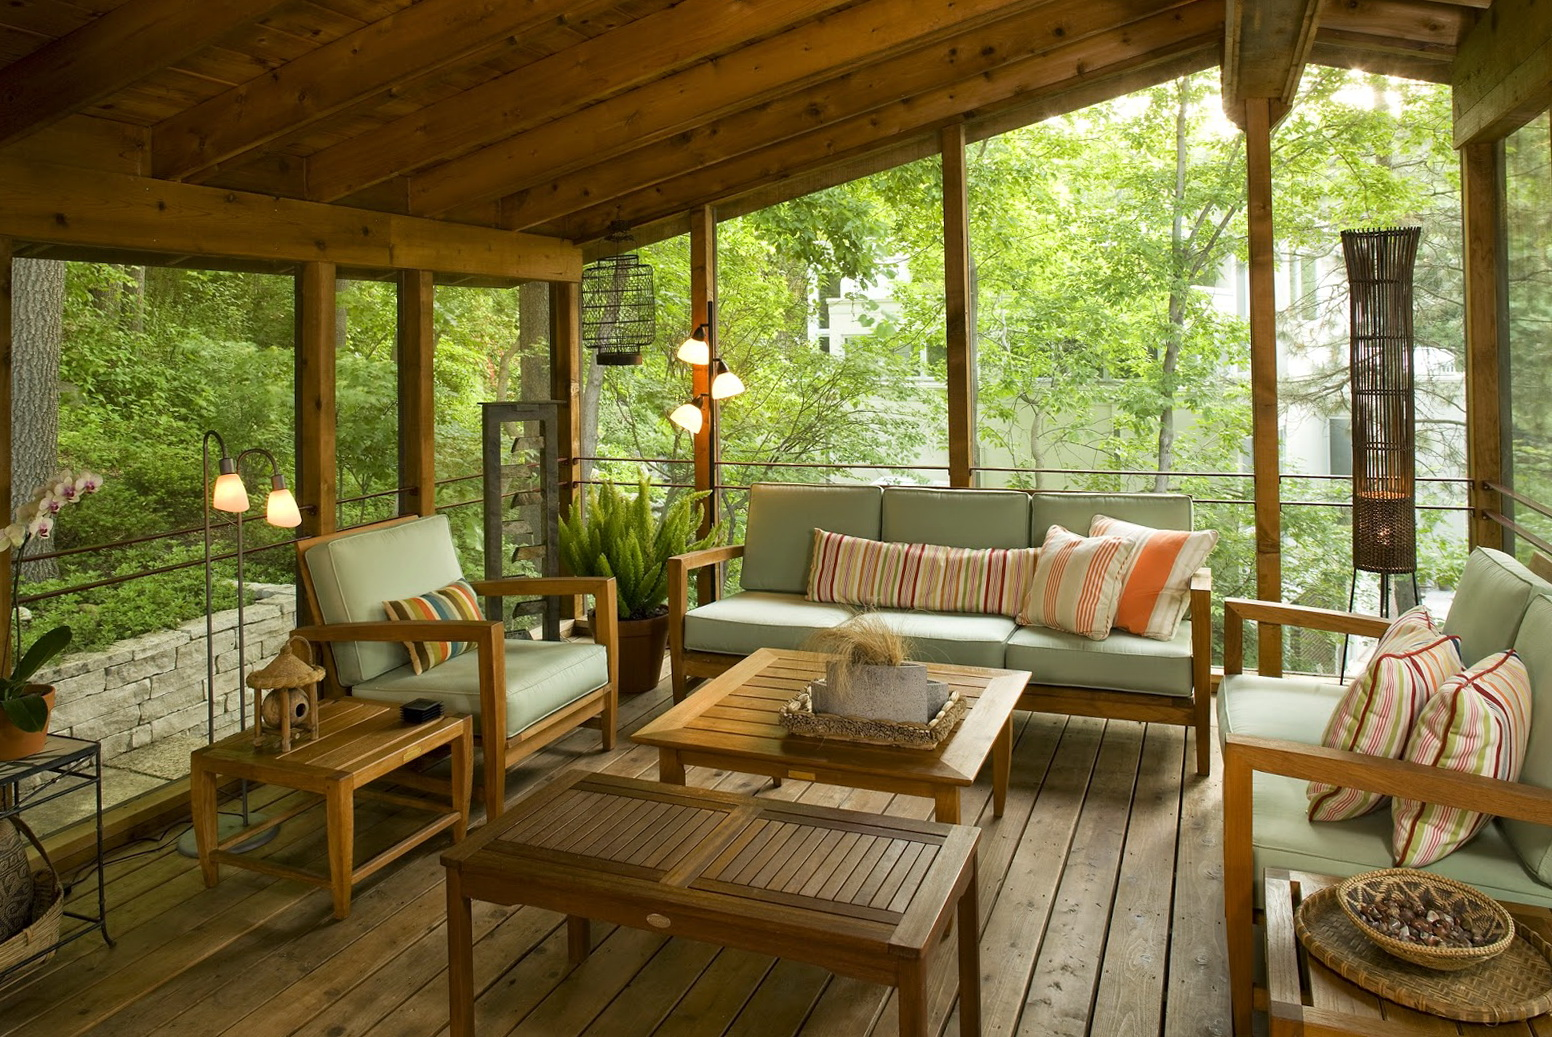 Image of: Cool Back Porch Ideas